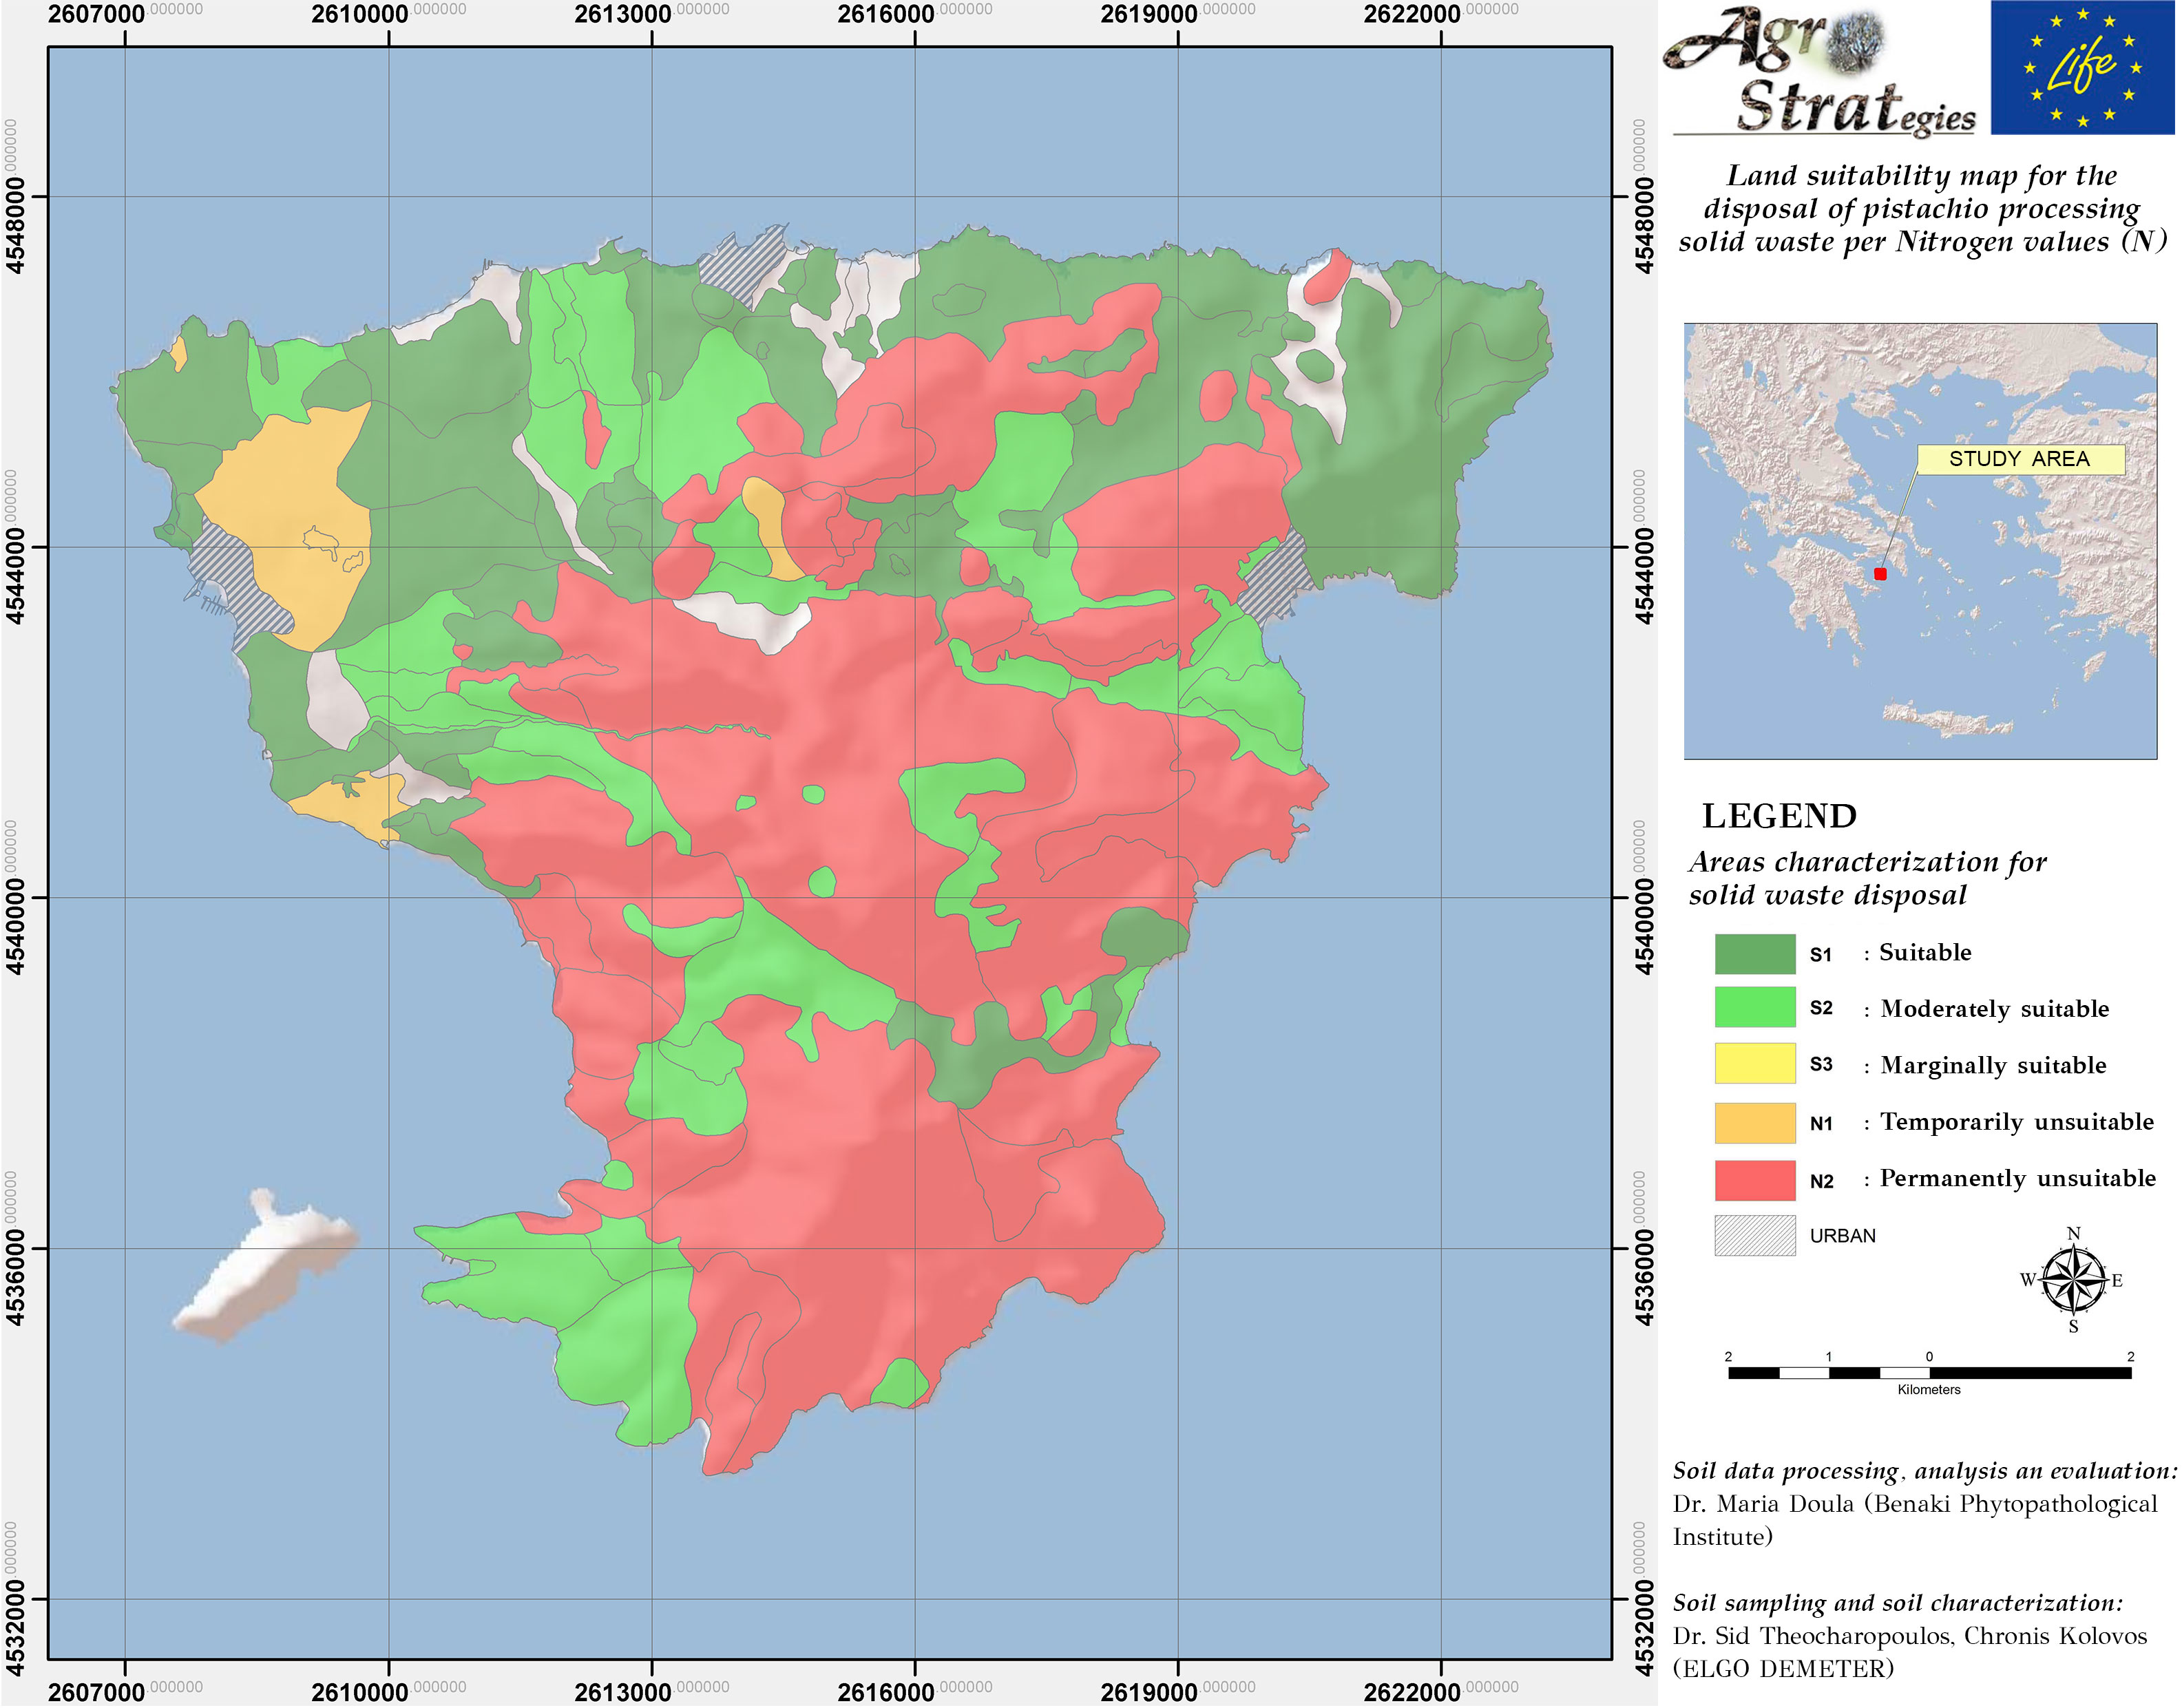 Land Suitability Maps for the distribution of solid pistachio wastes